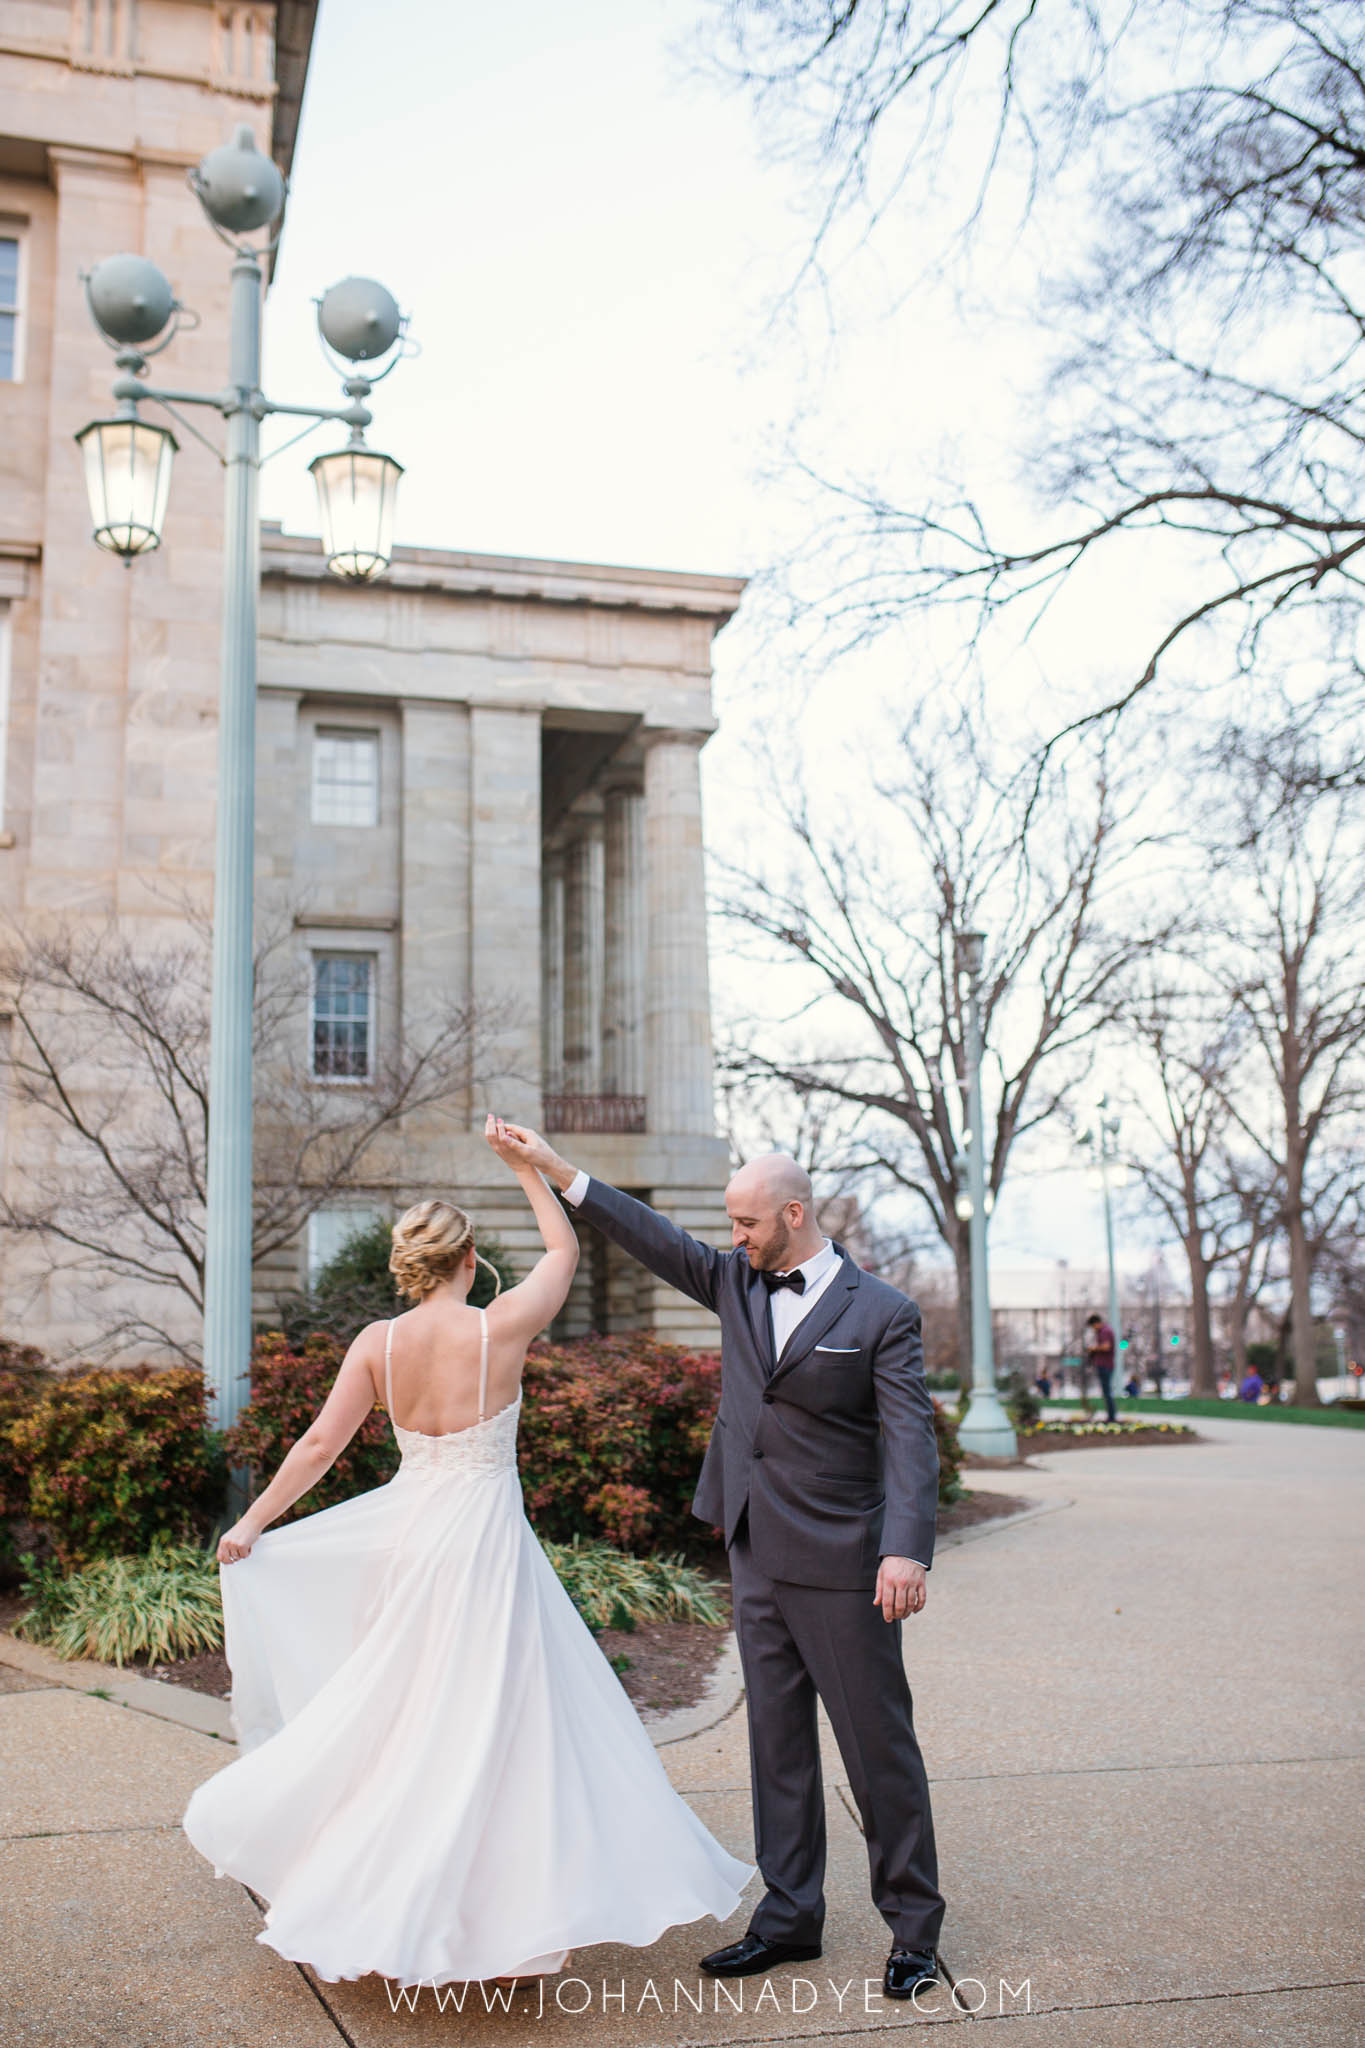 Engagement Photographer in Raleigh North Carolina